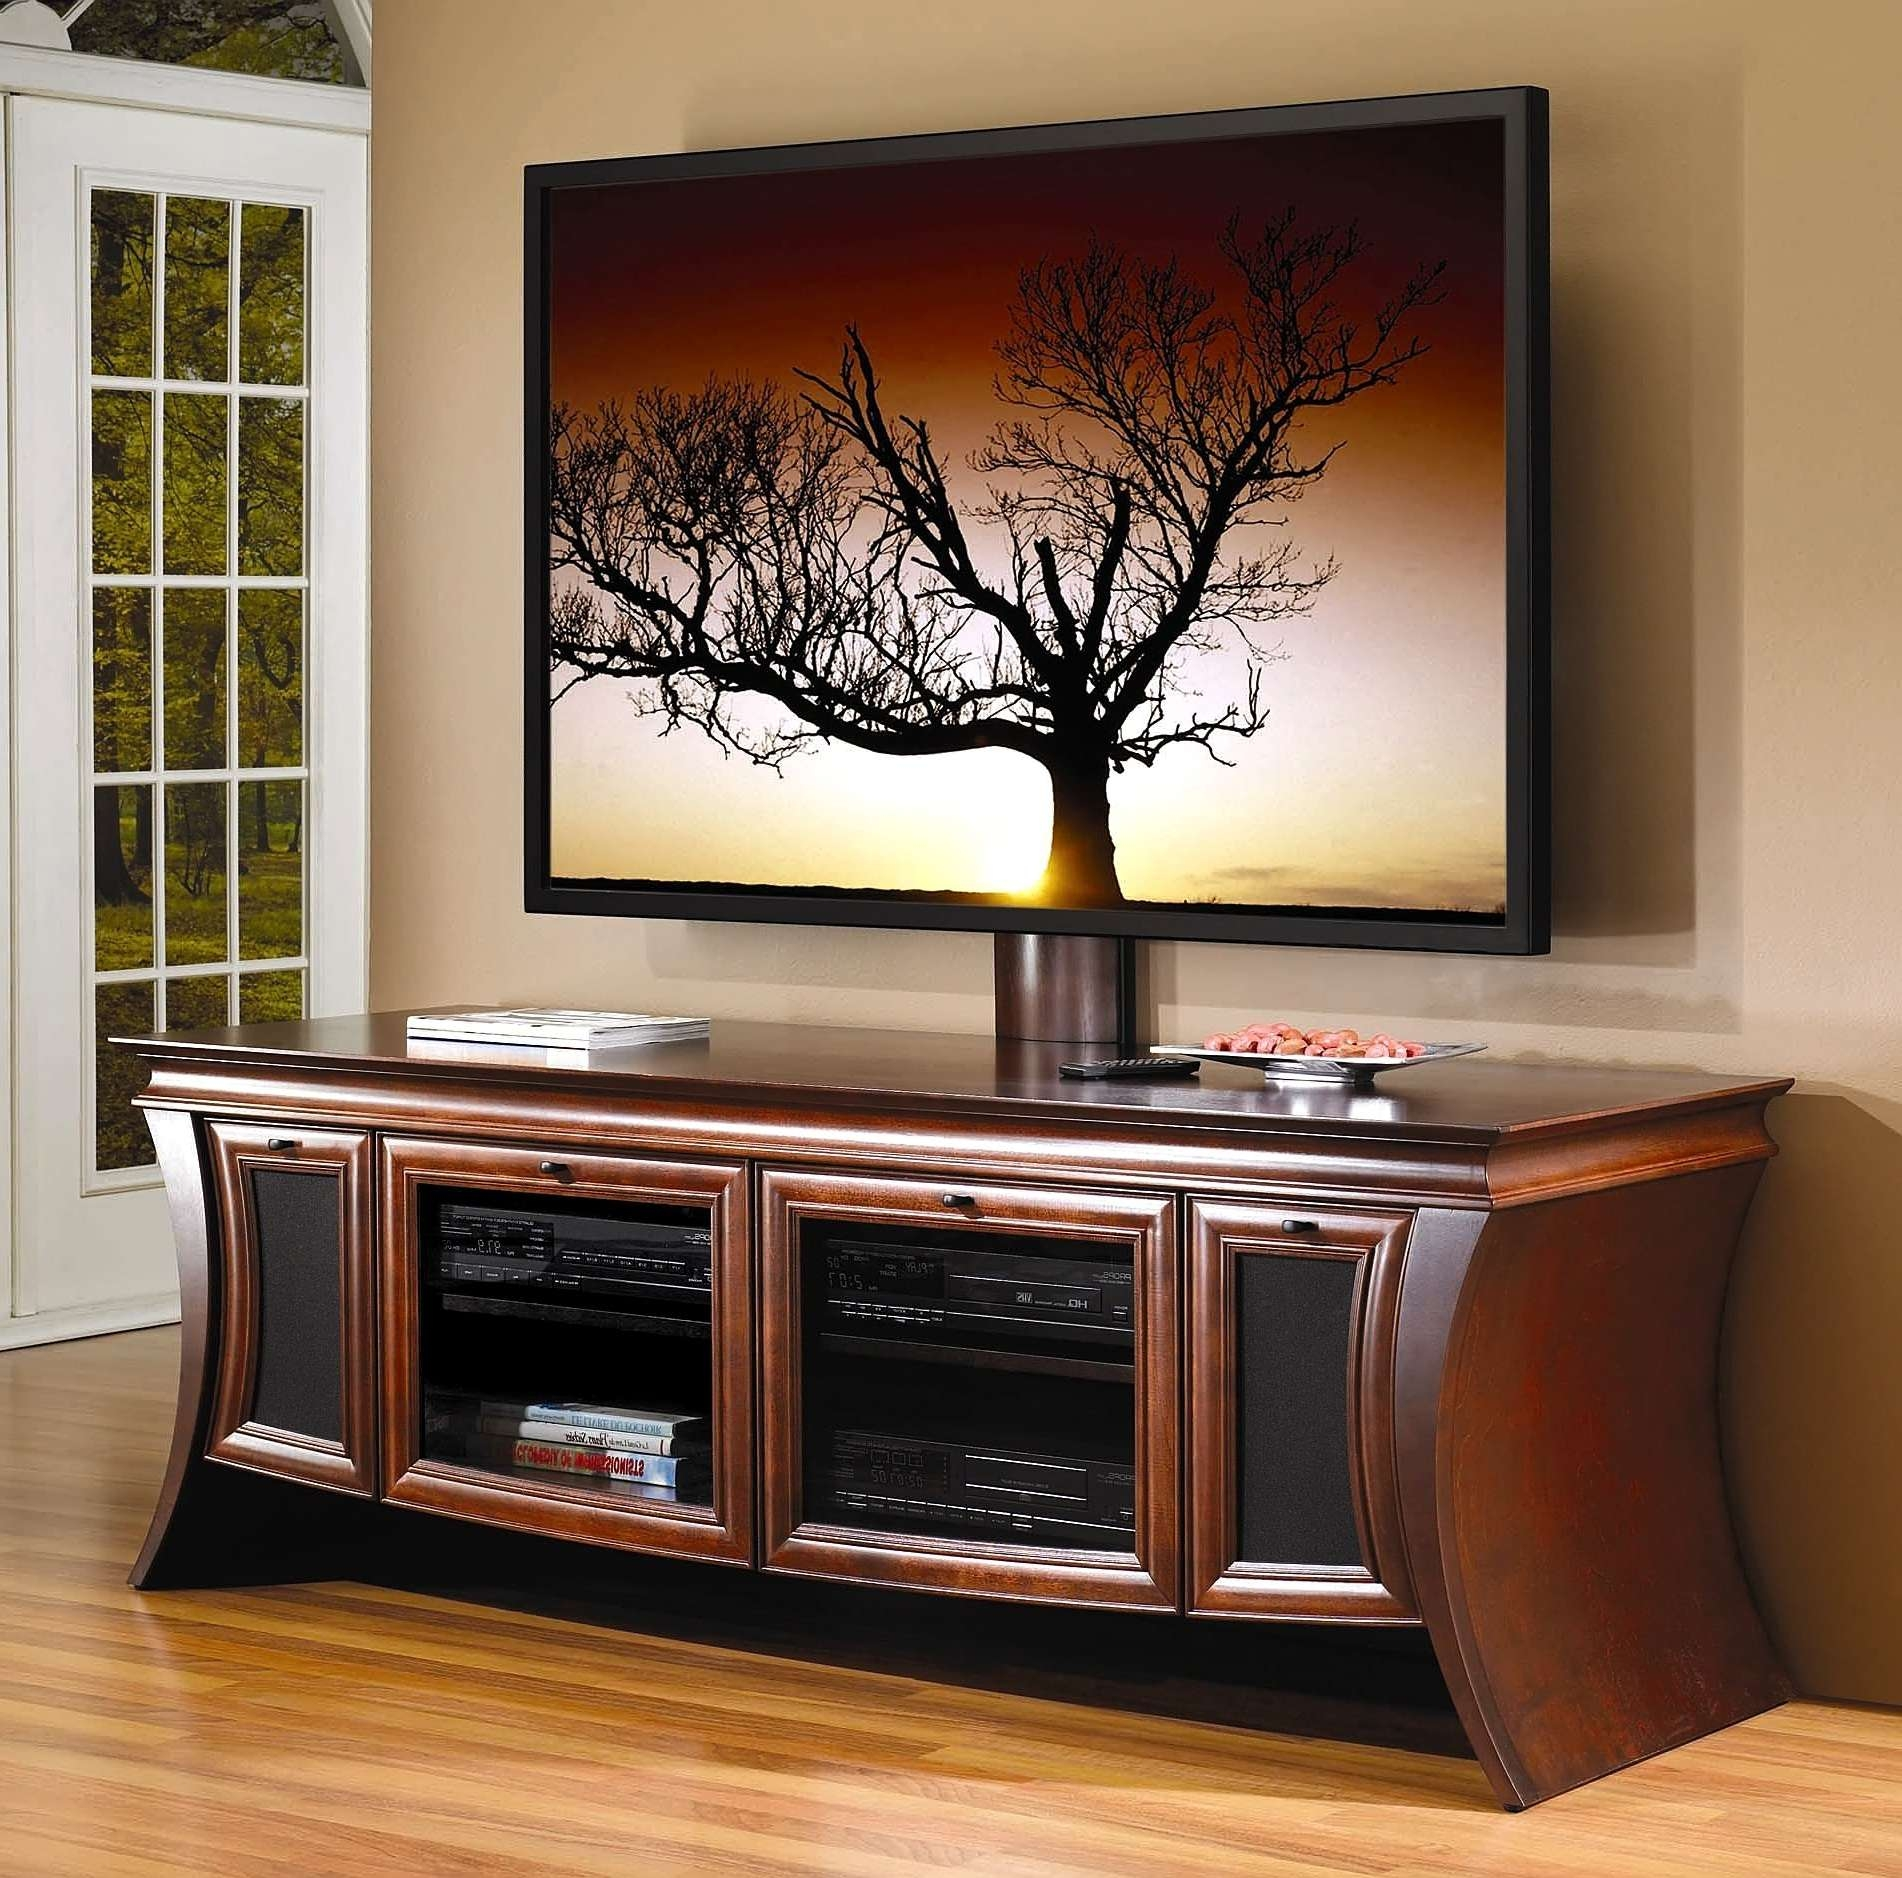 Wood Flat Screen Curved Tv Stands Photo Of Entertainment Center Within Wooden Tv Stands For 50 Inch Tv (View 14 of 15)